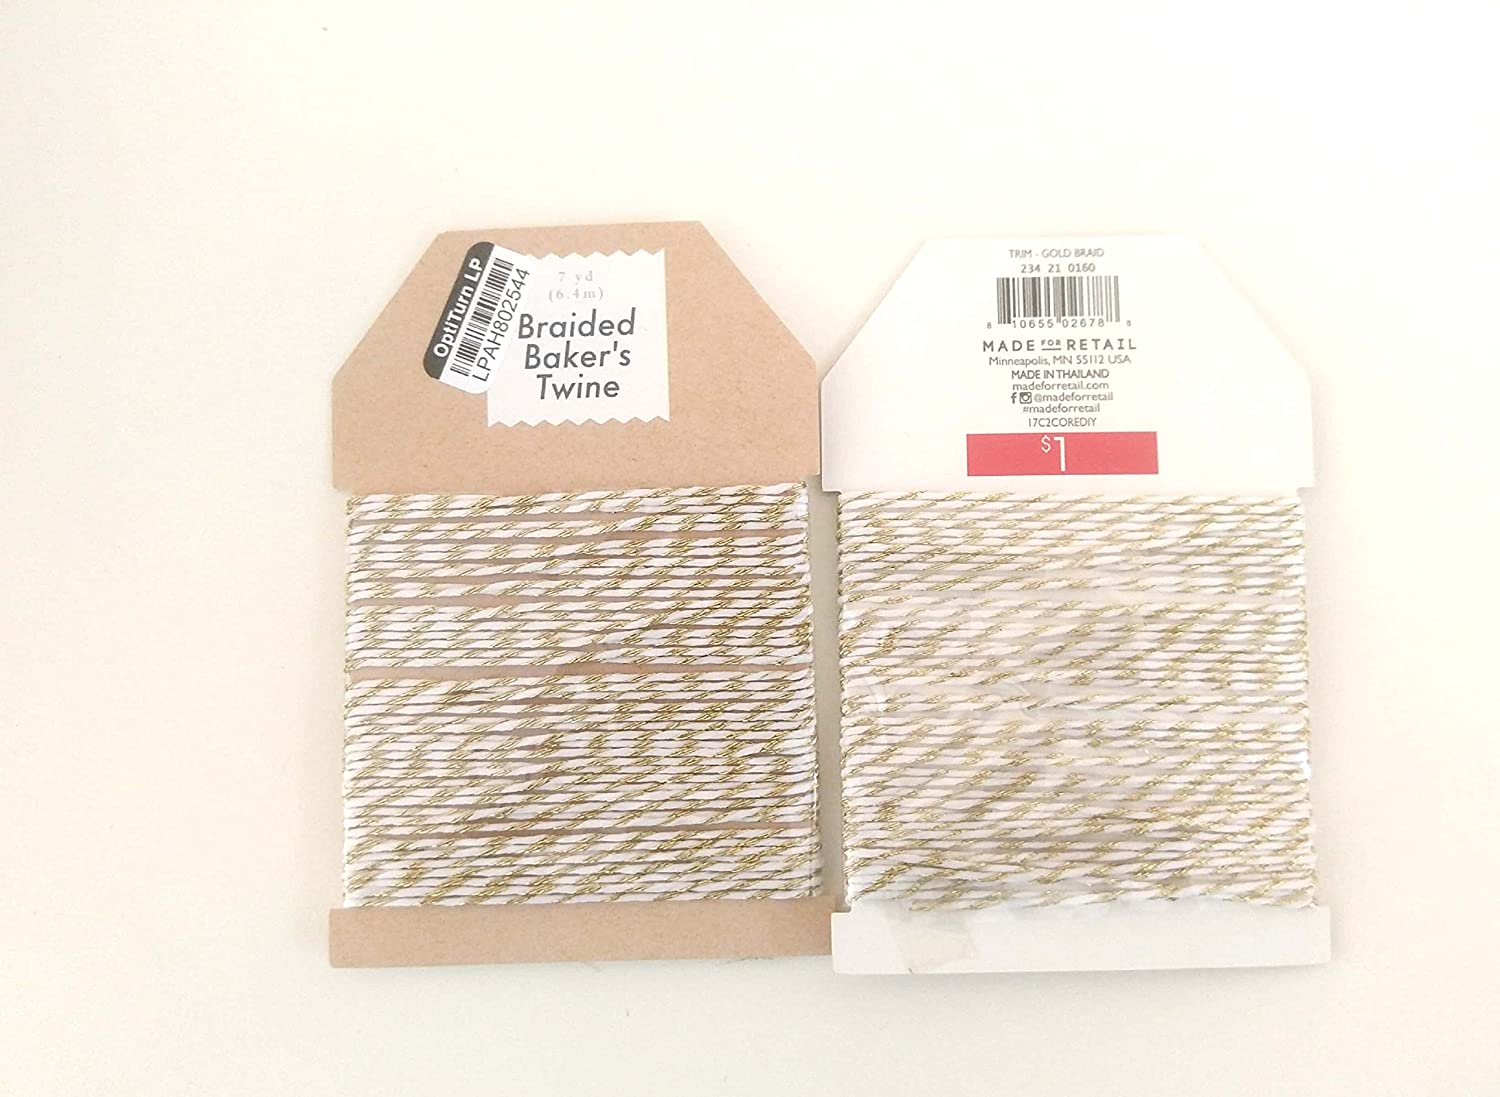 GOLD Braided Bakers Twine OPTITURN LP